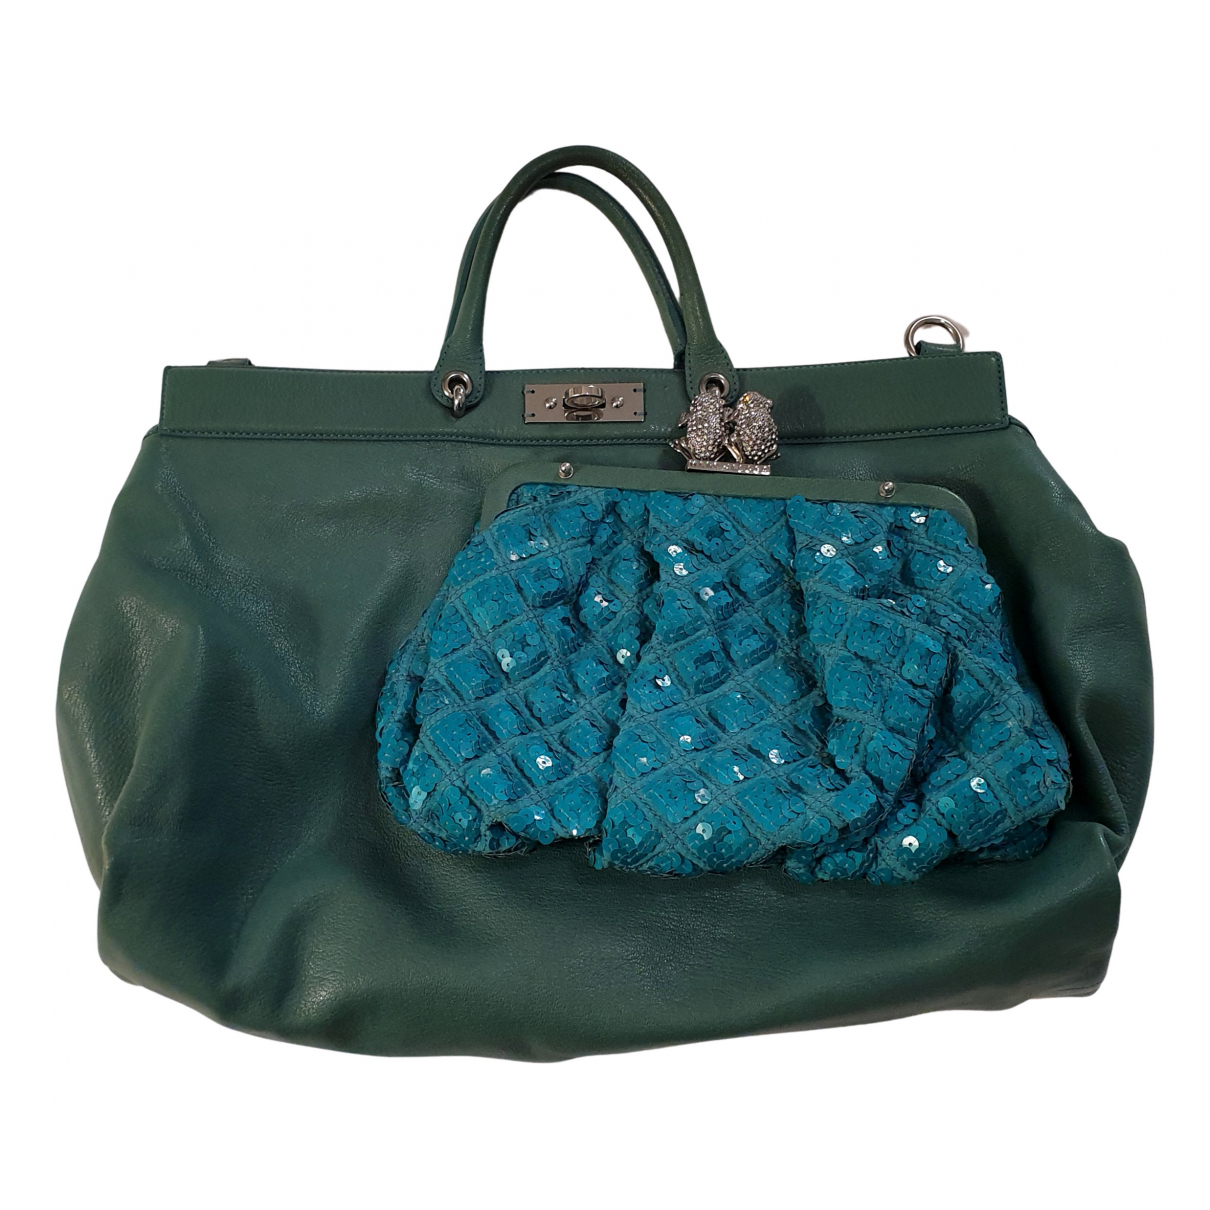 Marc Jacobs N Green Leather handbag for Women N